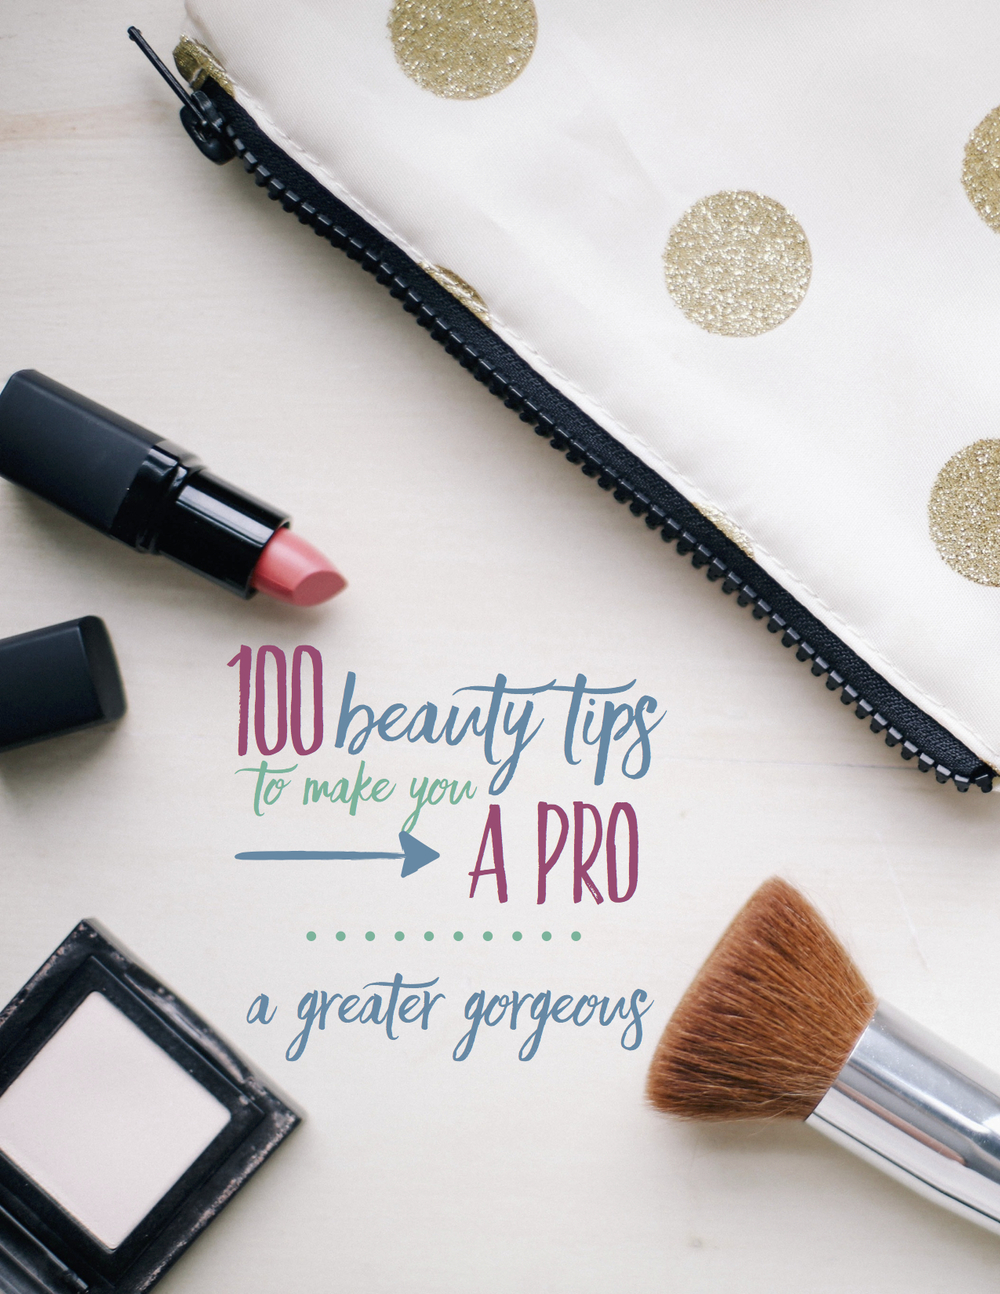 Step up your beauty game with 100 great beauty tips!